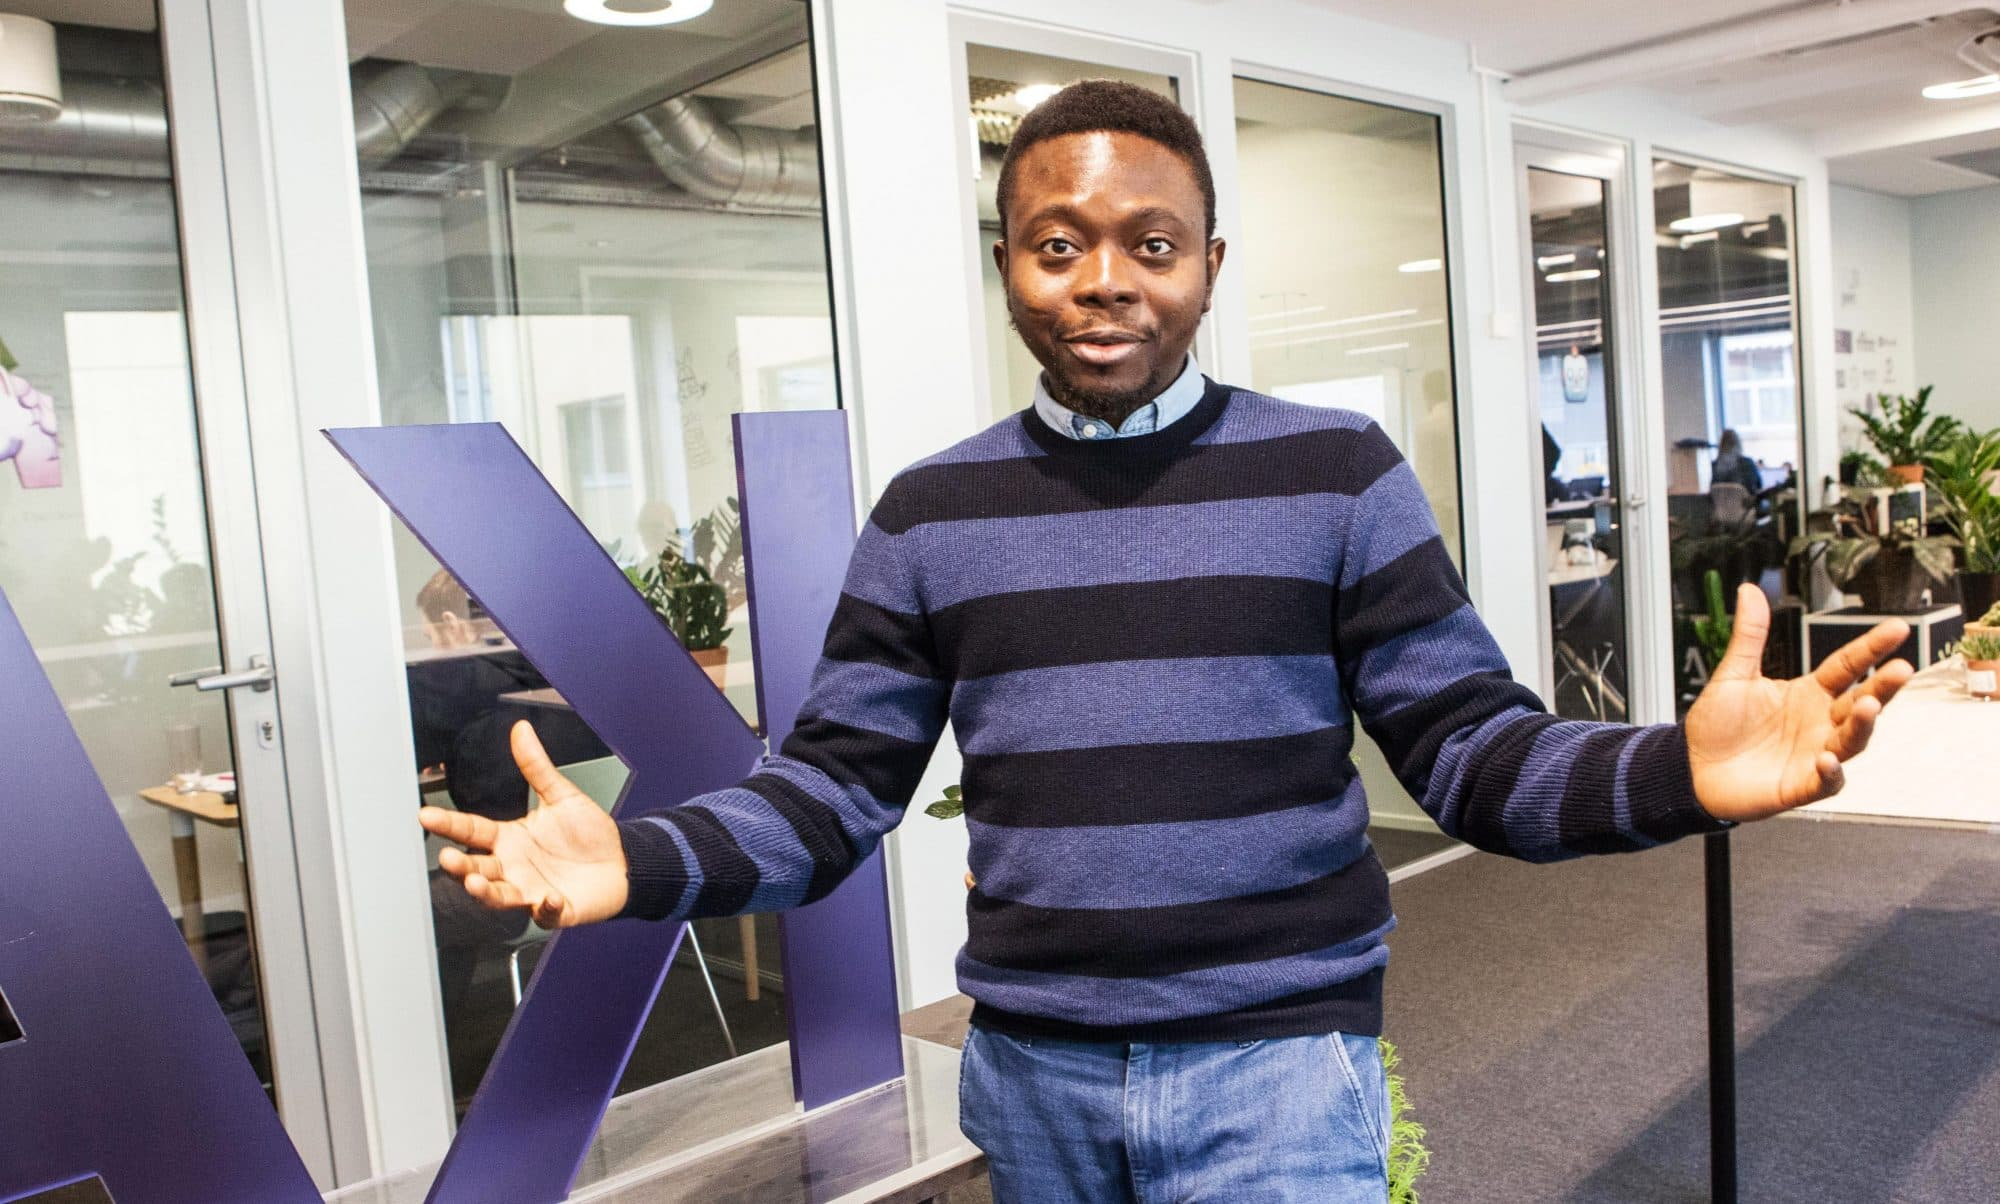 RxAll: Nigerian Healthcare Startup Bags N135 Million Funding From Founders Factory Africa: CEO of Rxall